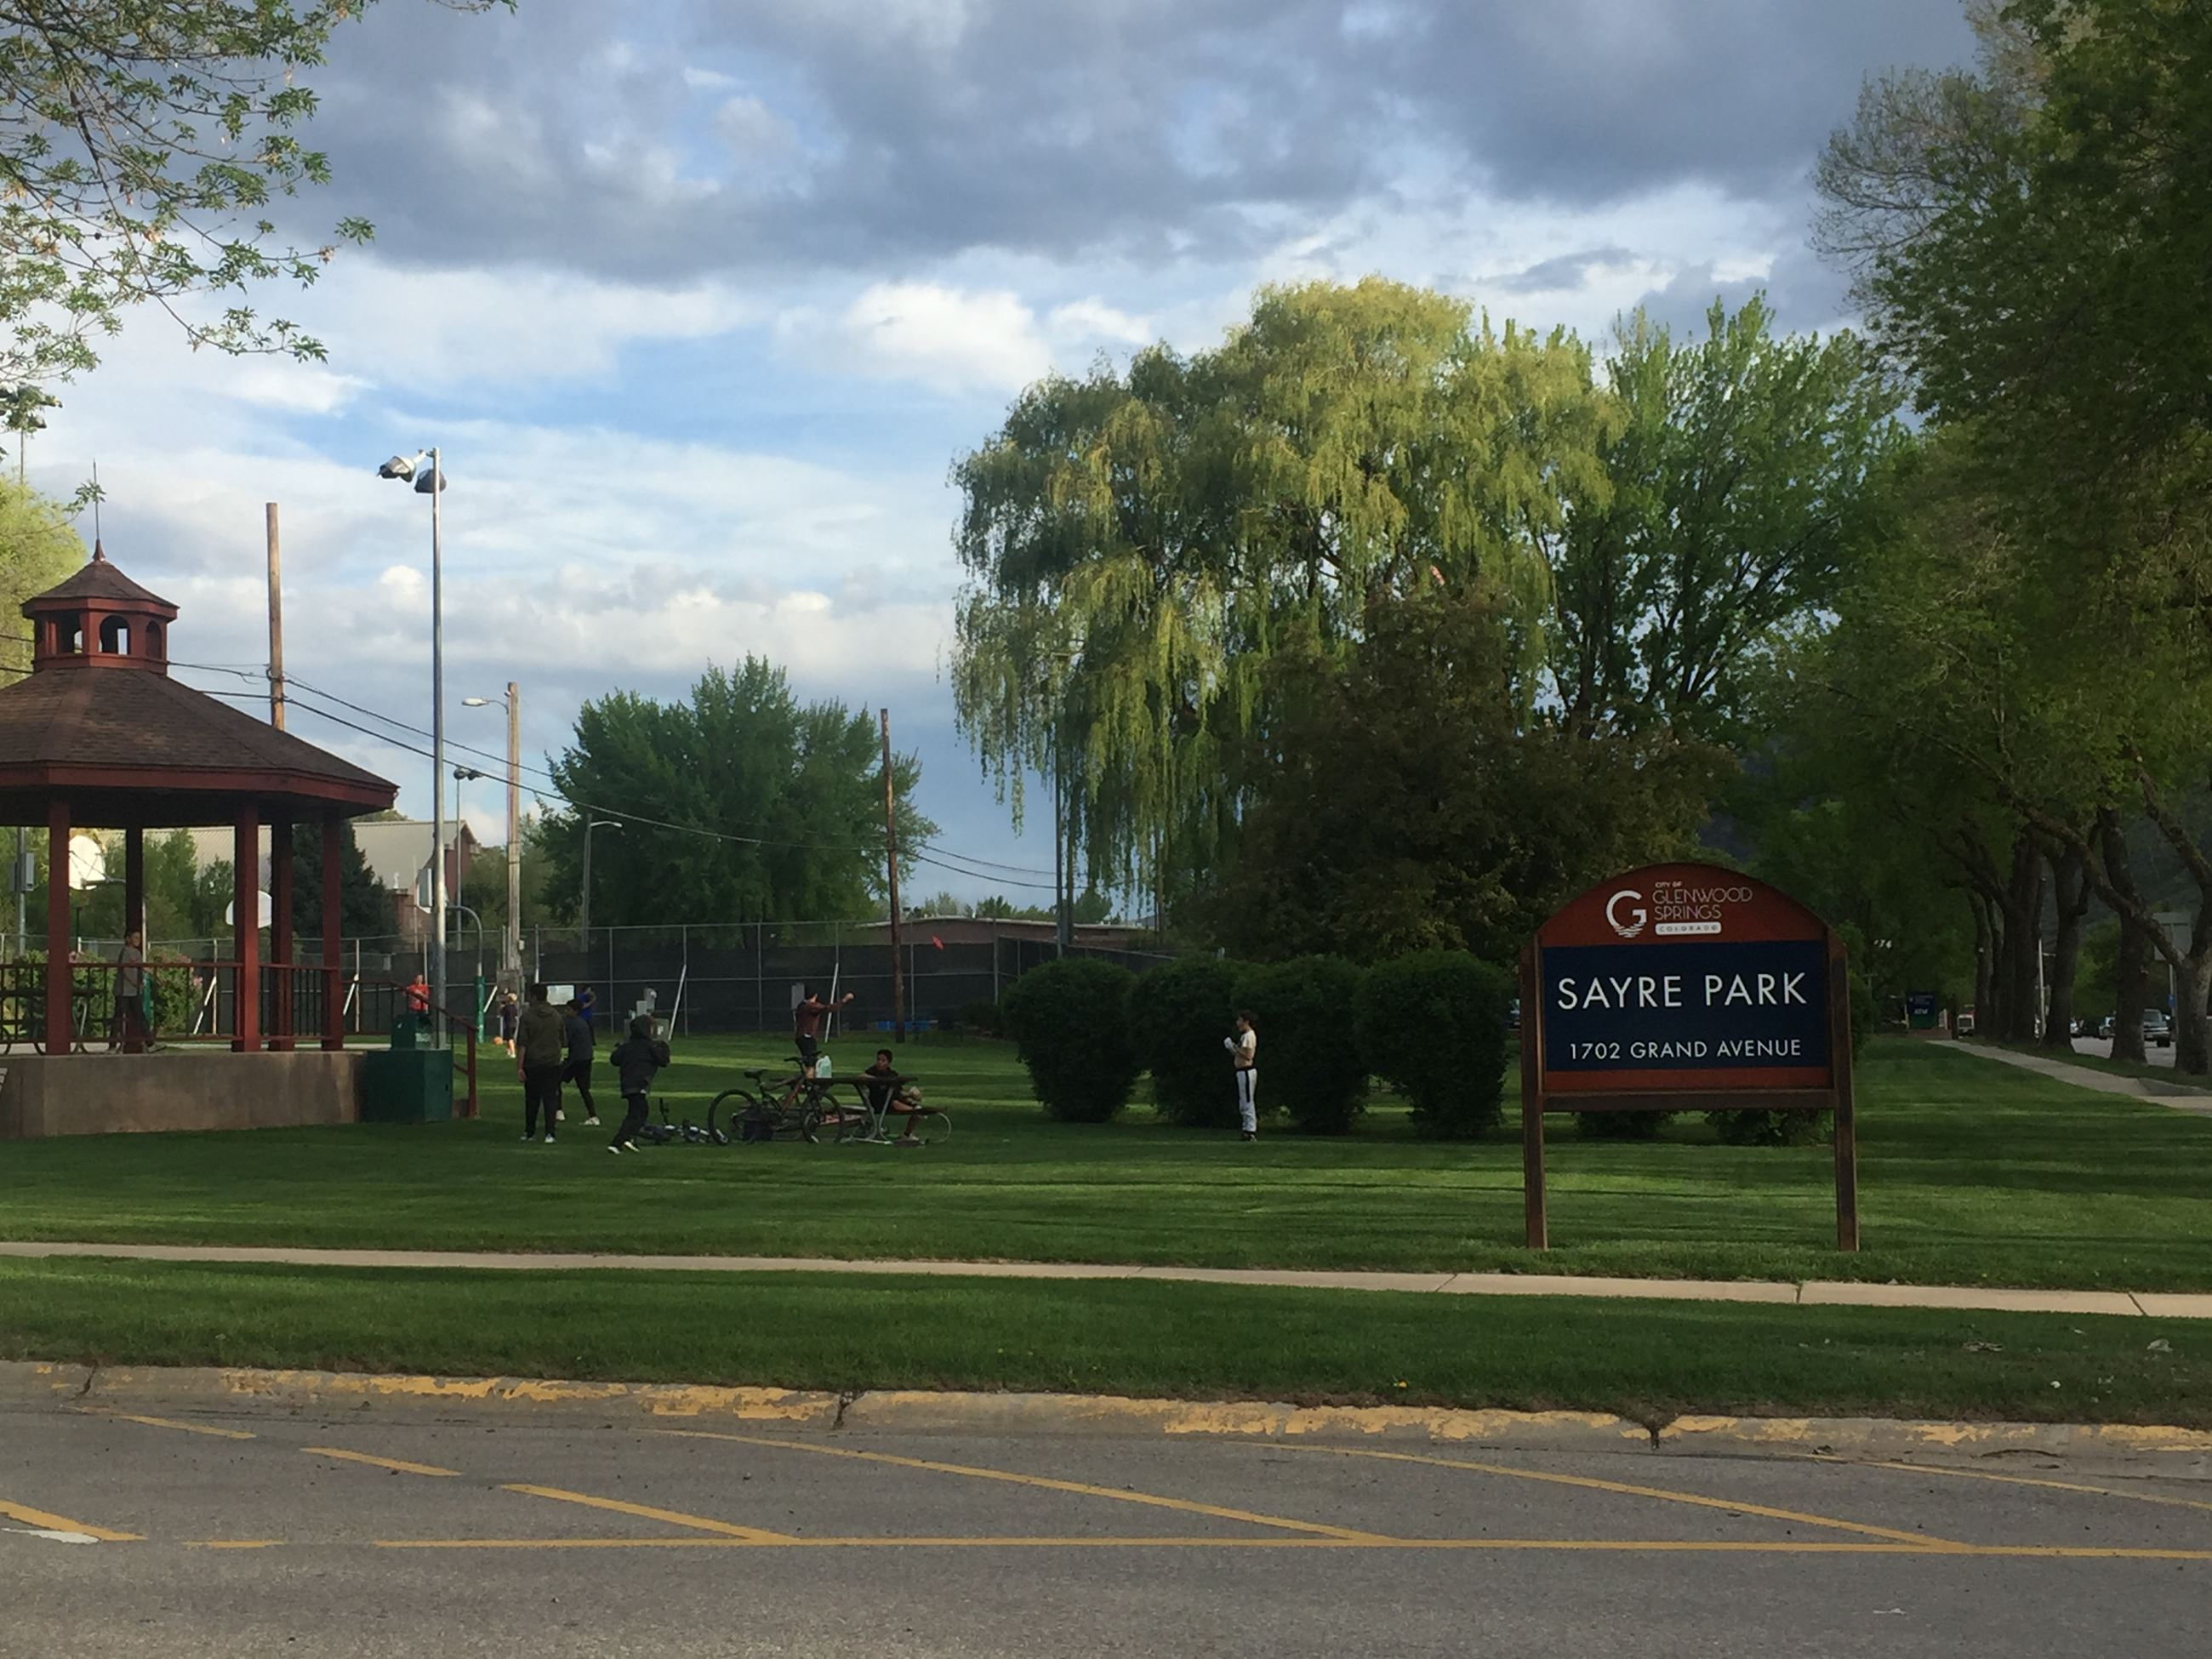 Sayre Park Sign